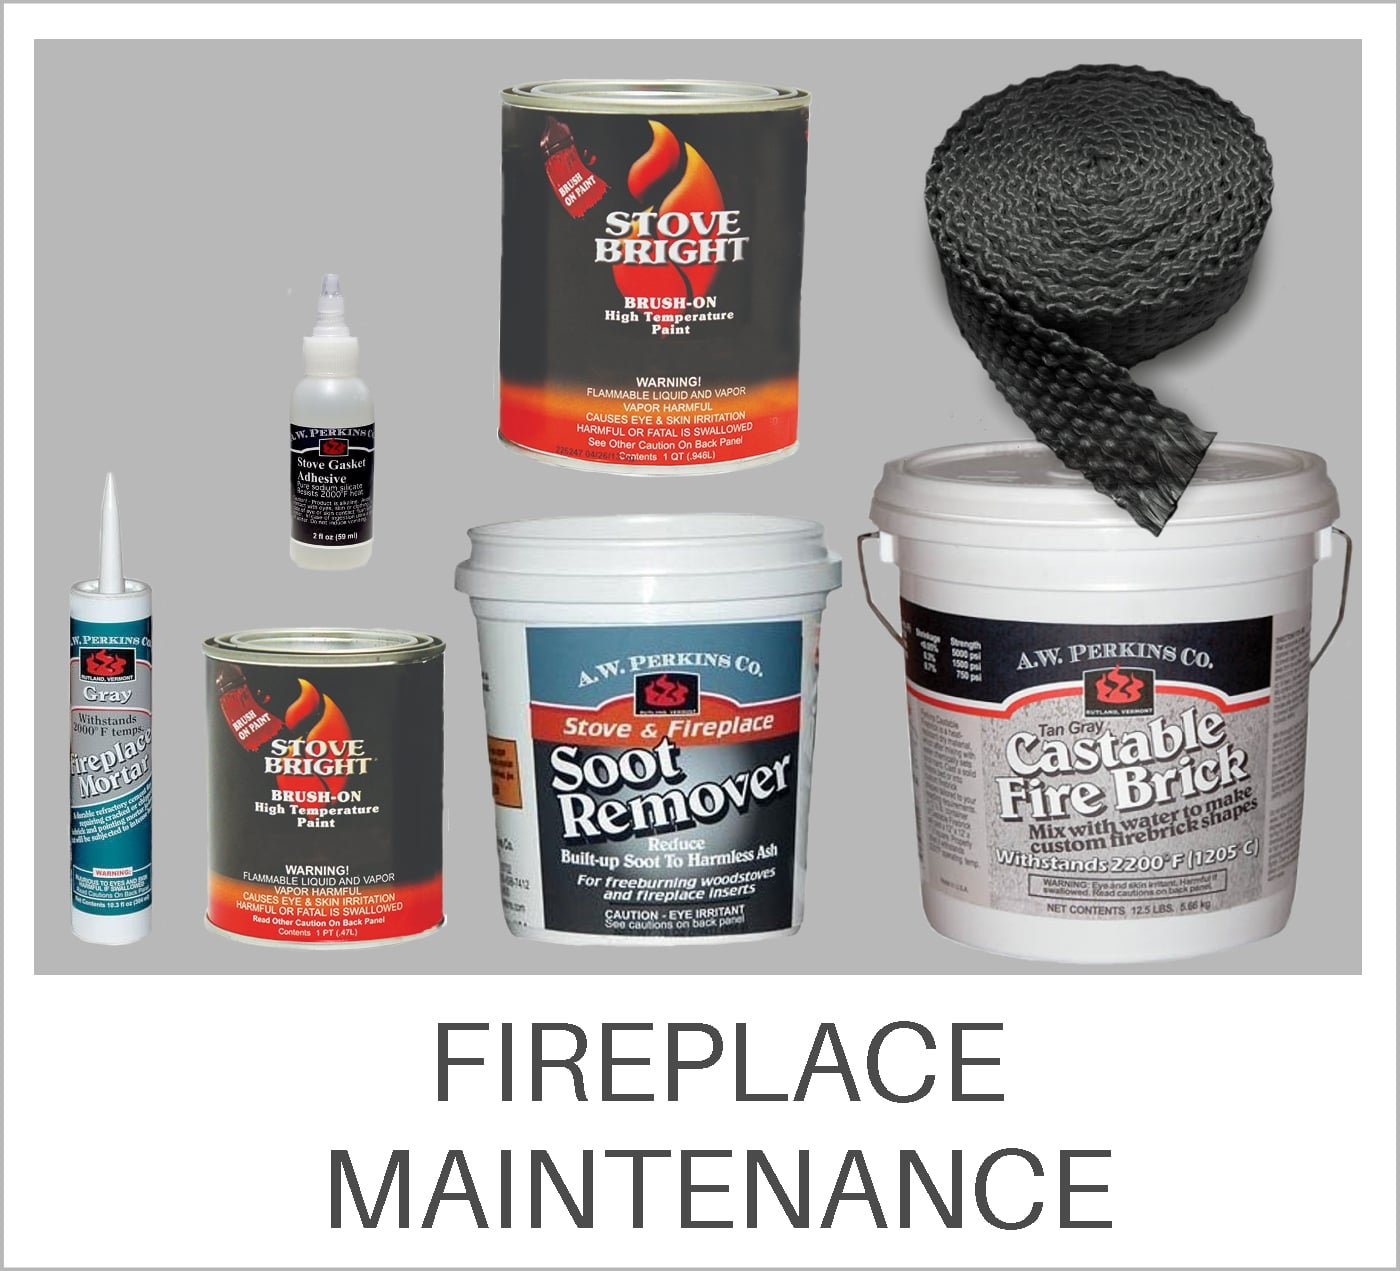 Fireplace Maintenance Learning Center